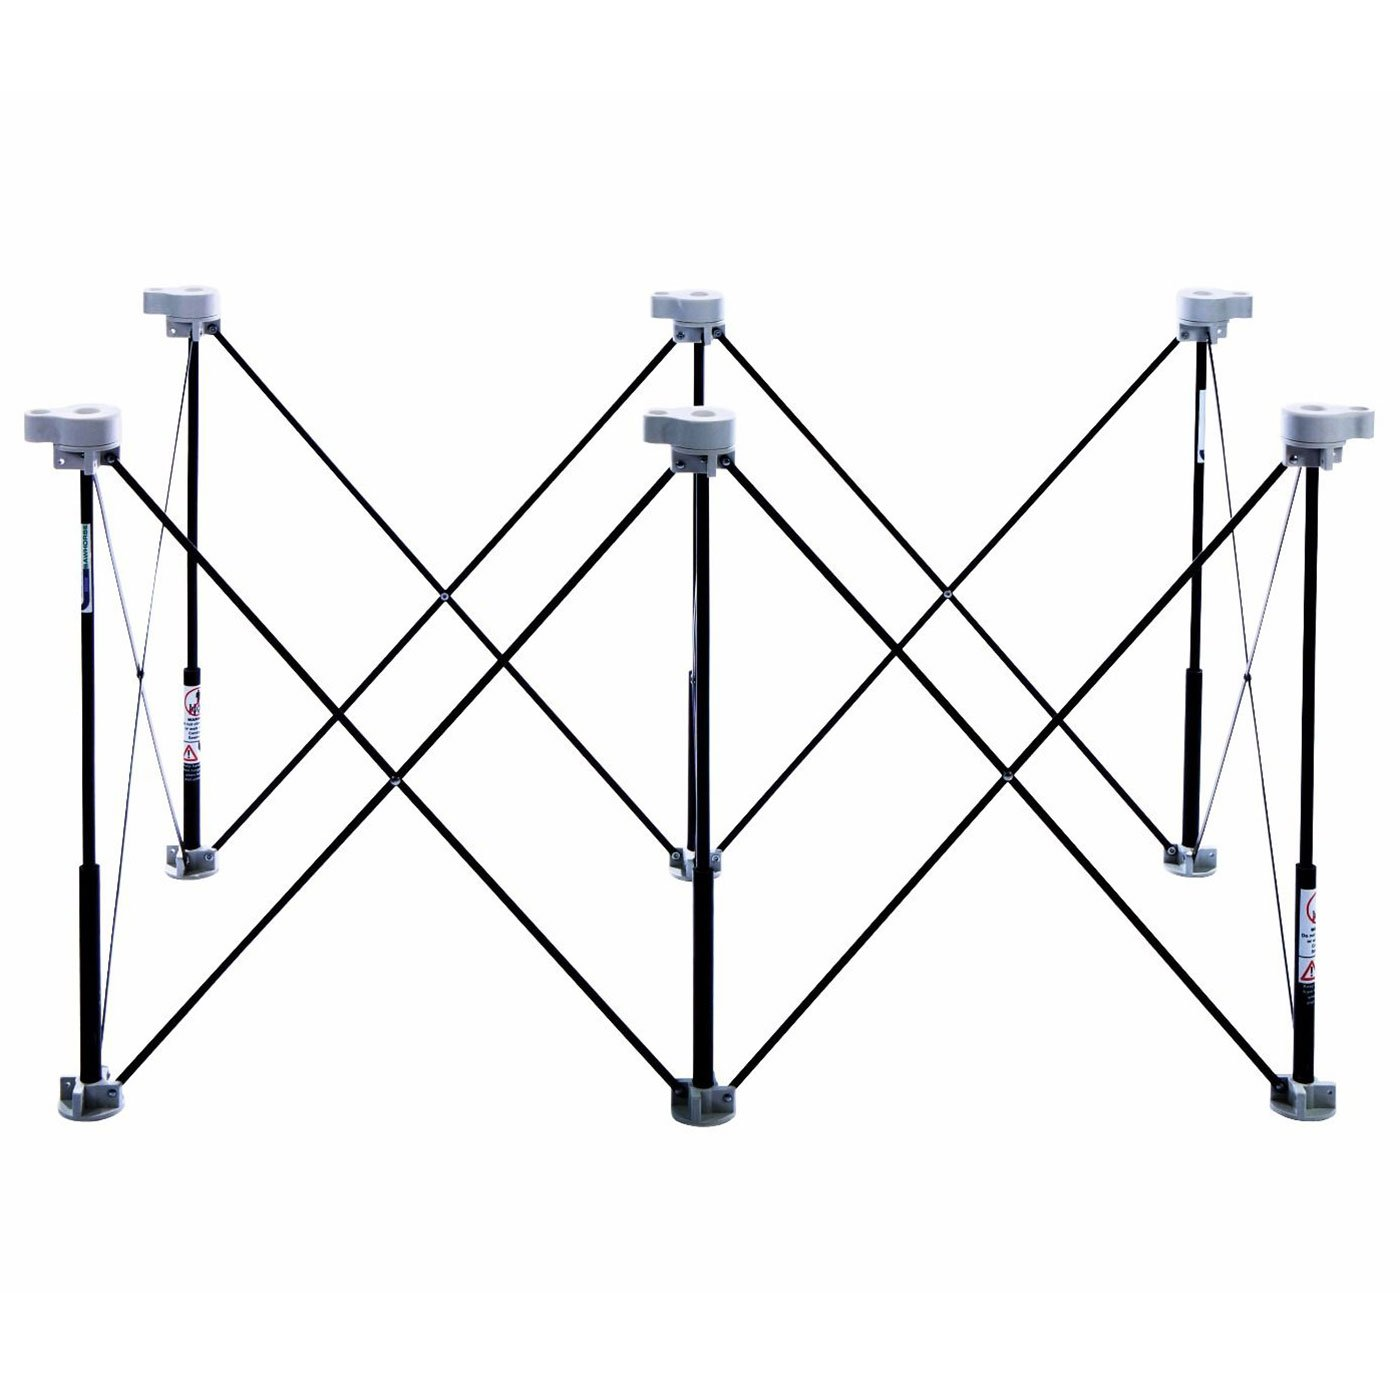 Centipede Tool K100 6 Strut Expandable 2' X 4' Portable Sawhorse and Work System Kit